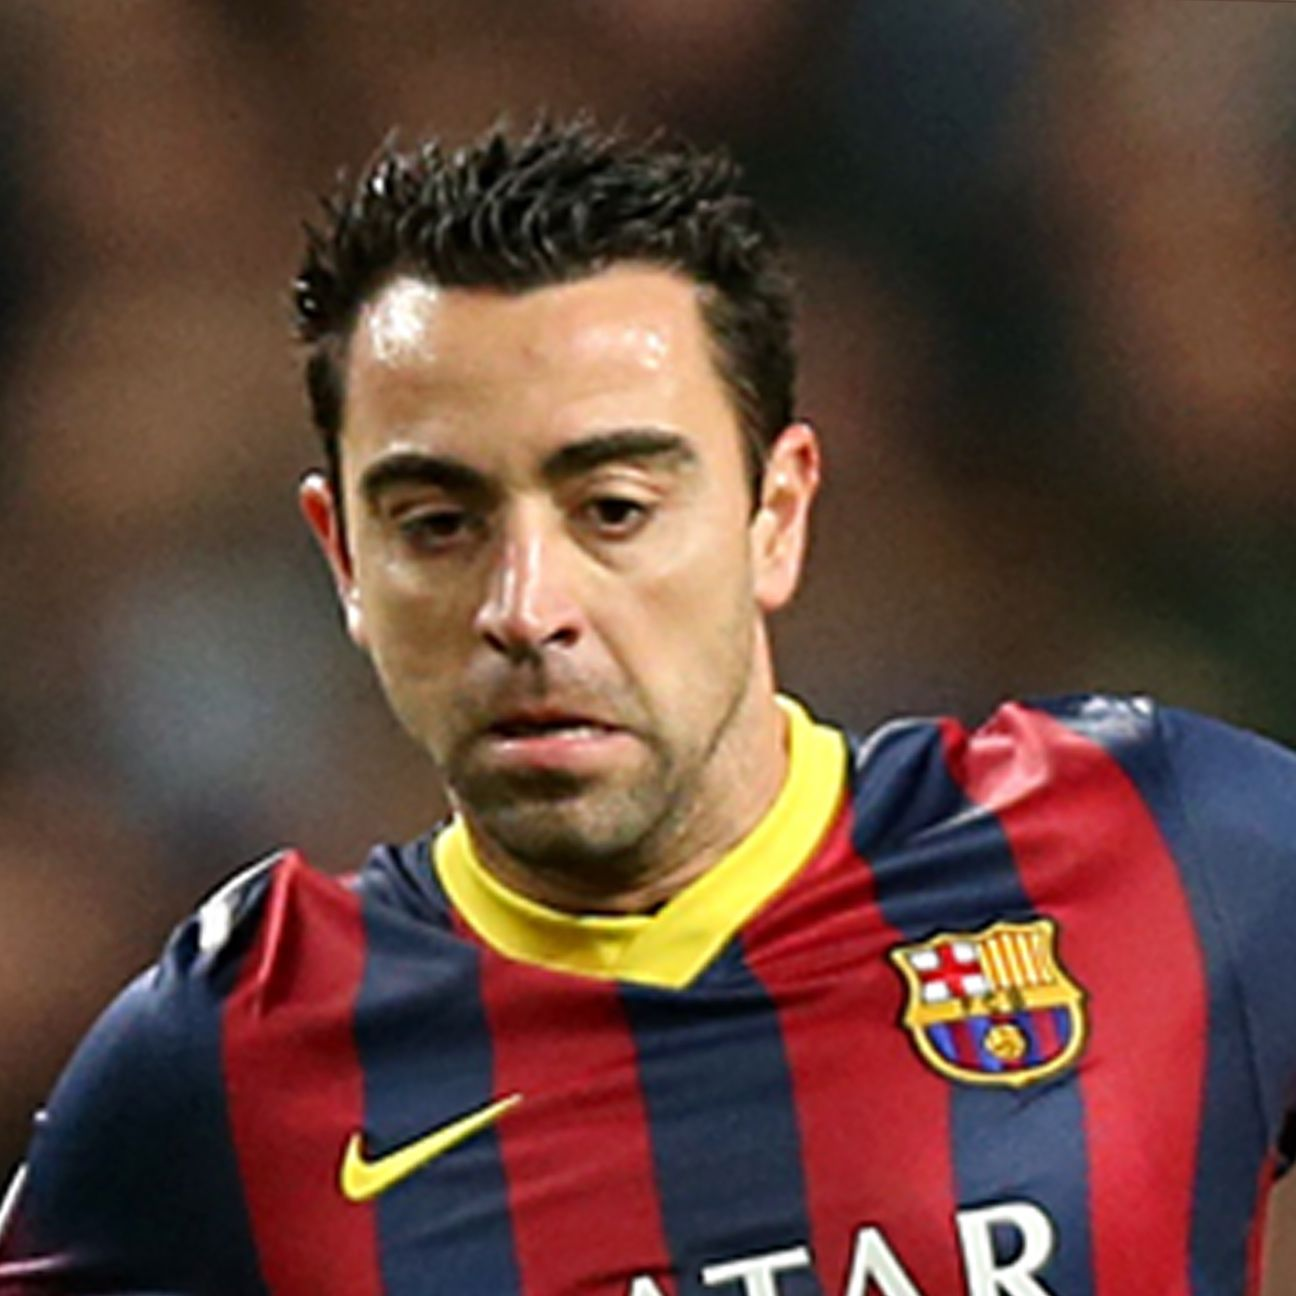 After 17 seasons, Xavi's time at Barcelona will come to a close in next month's Champions League final.